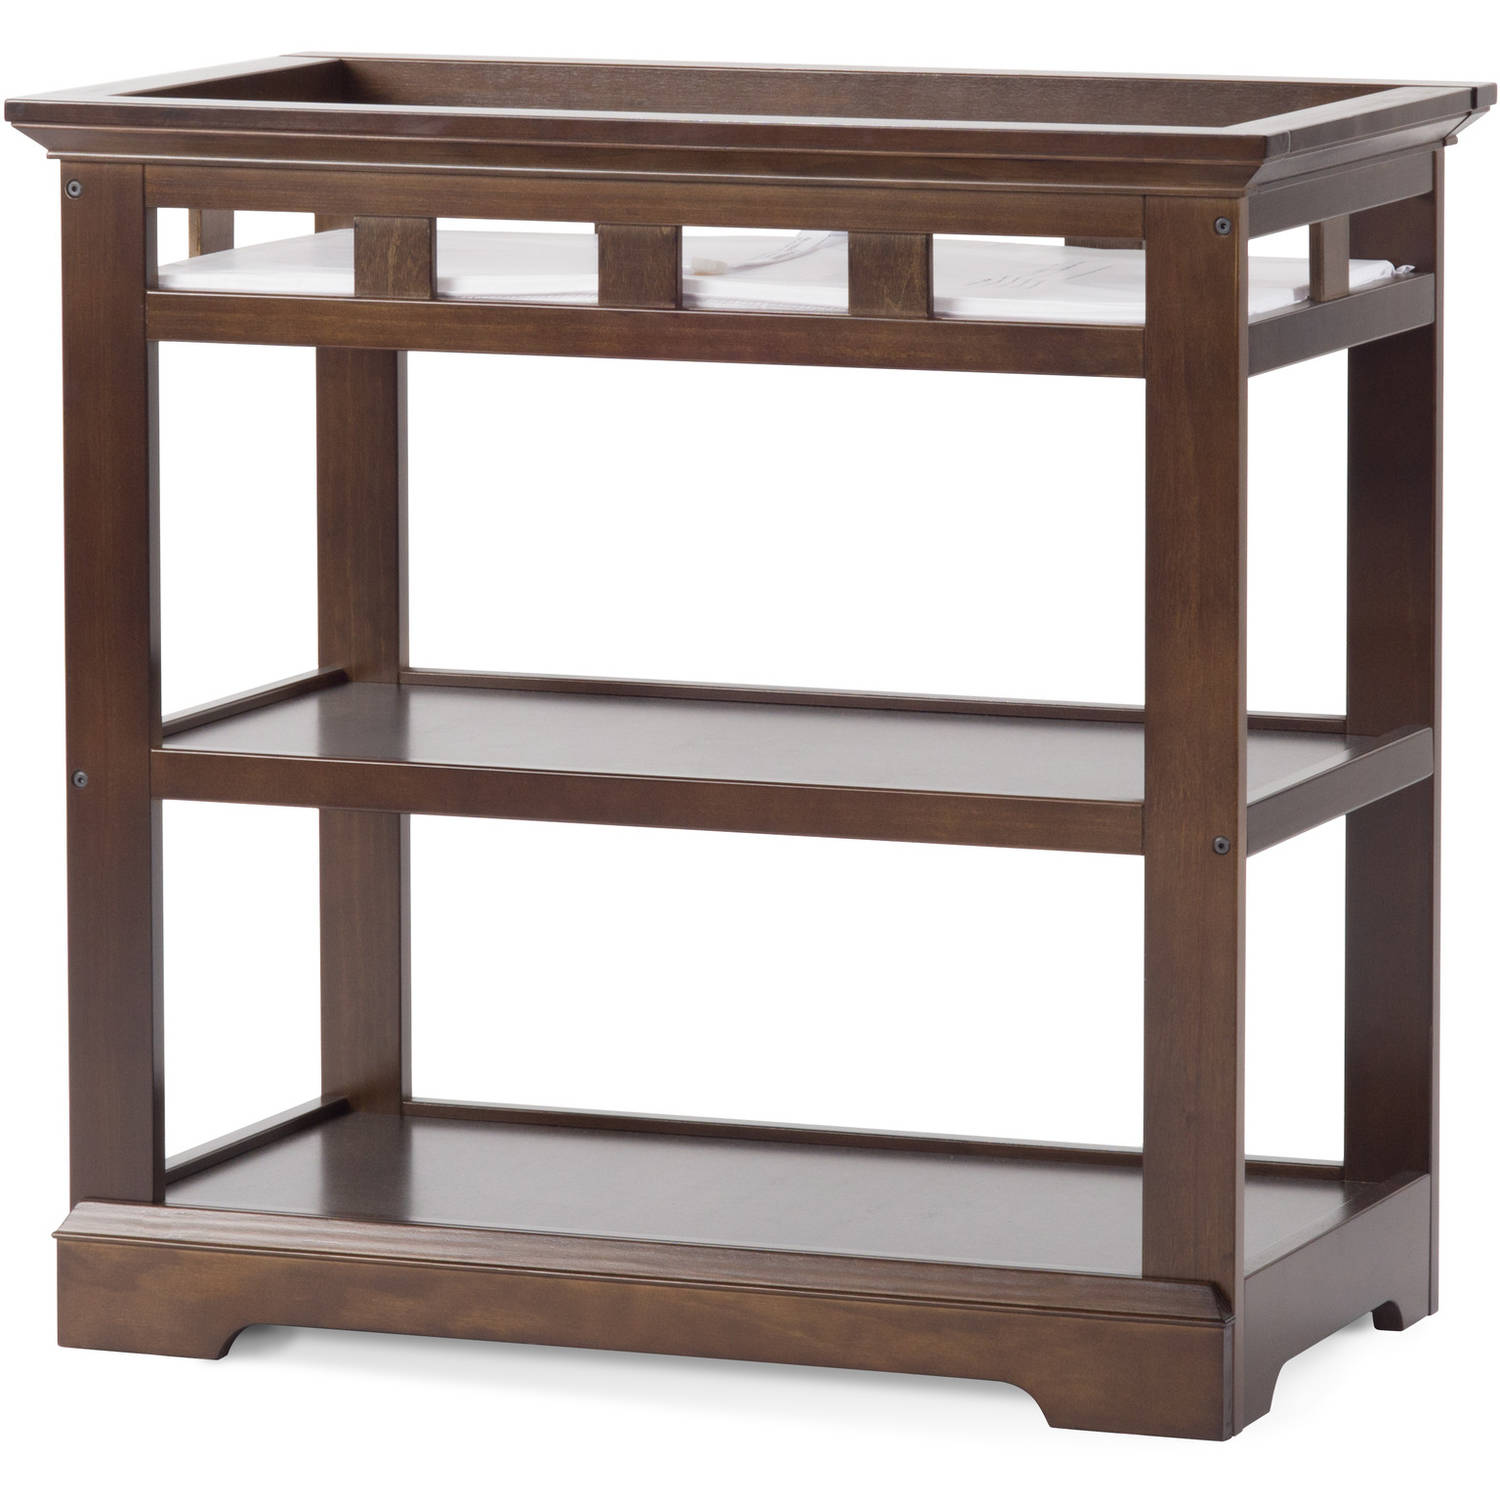 Kayden Dressing Table, Cool Gray by Foundations Worldwide